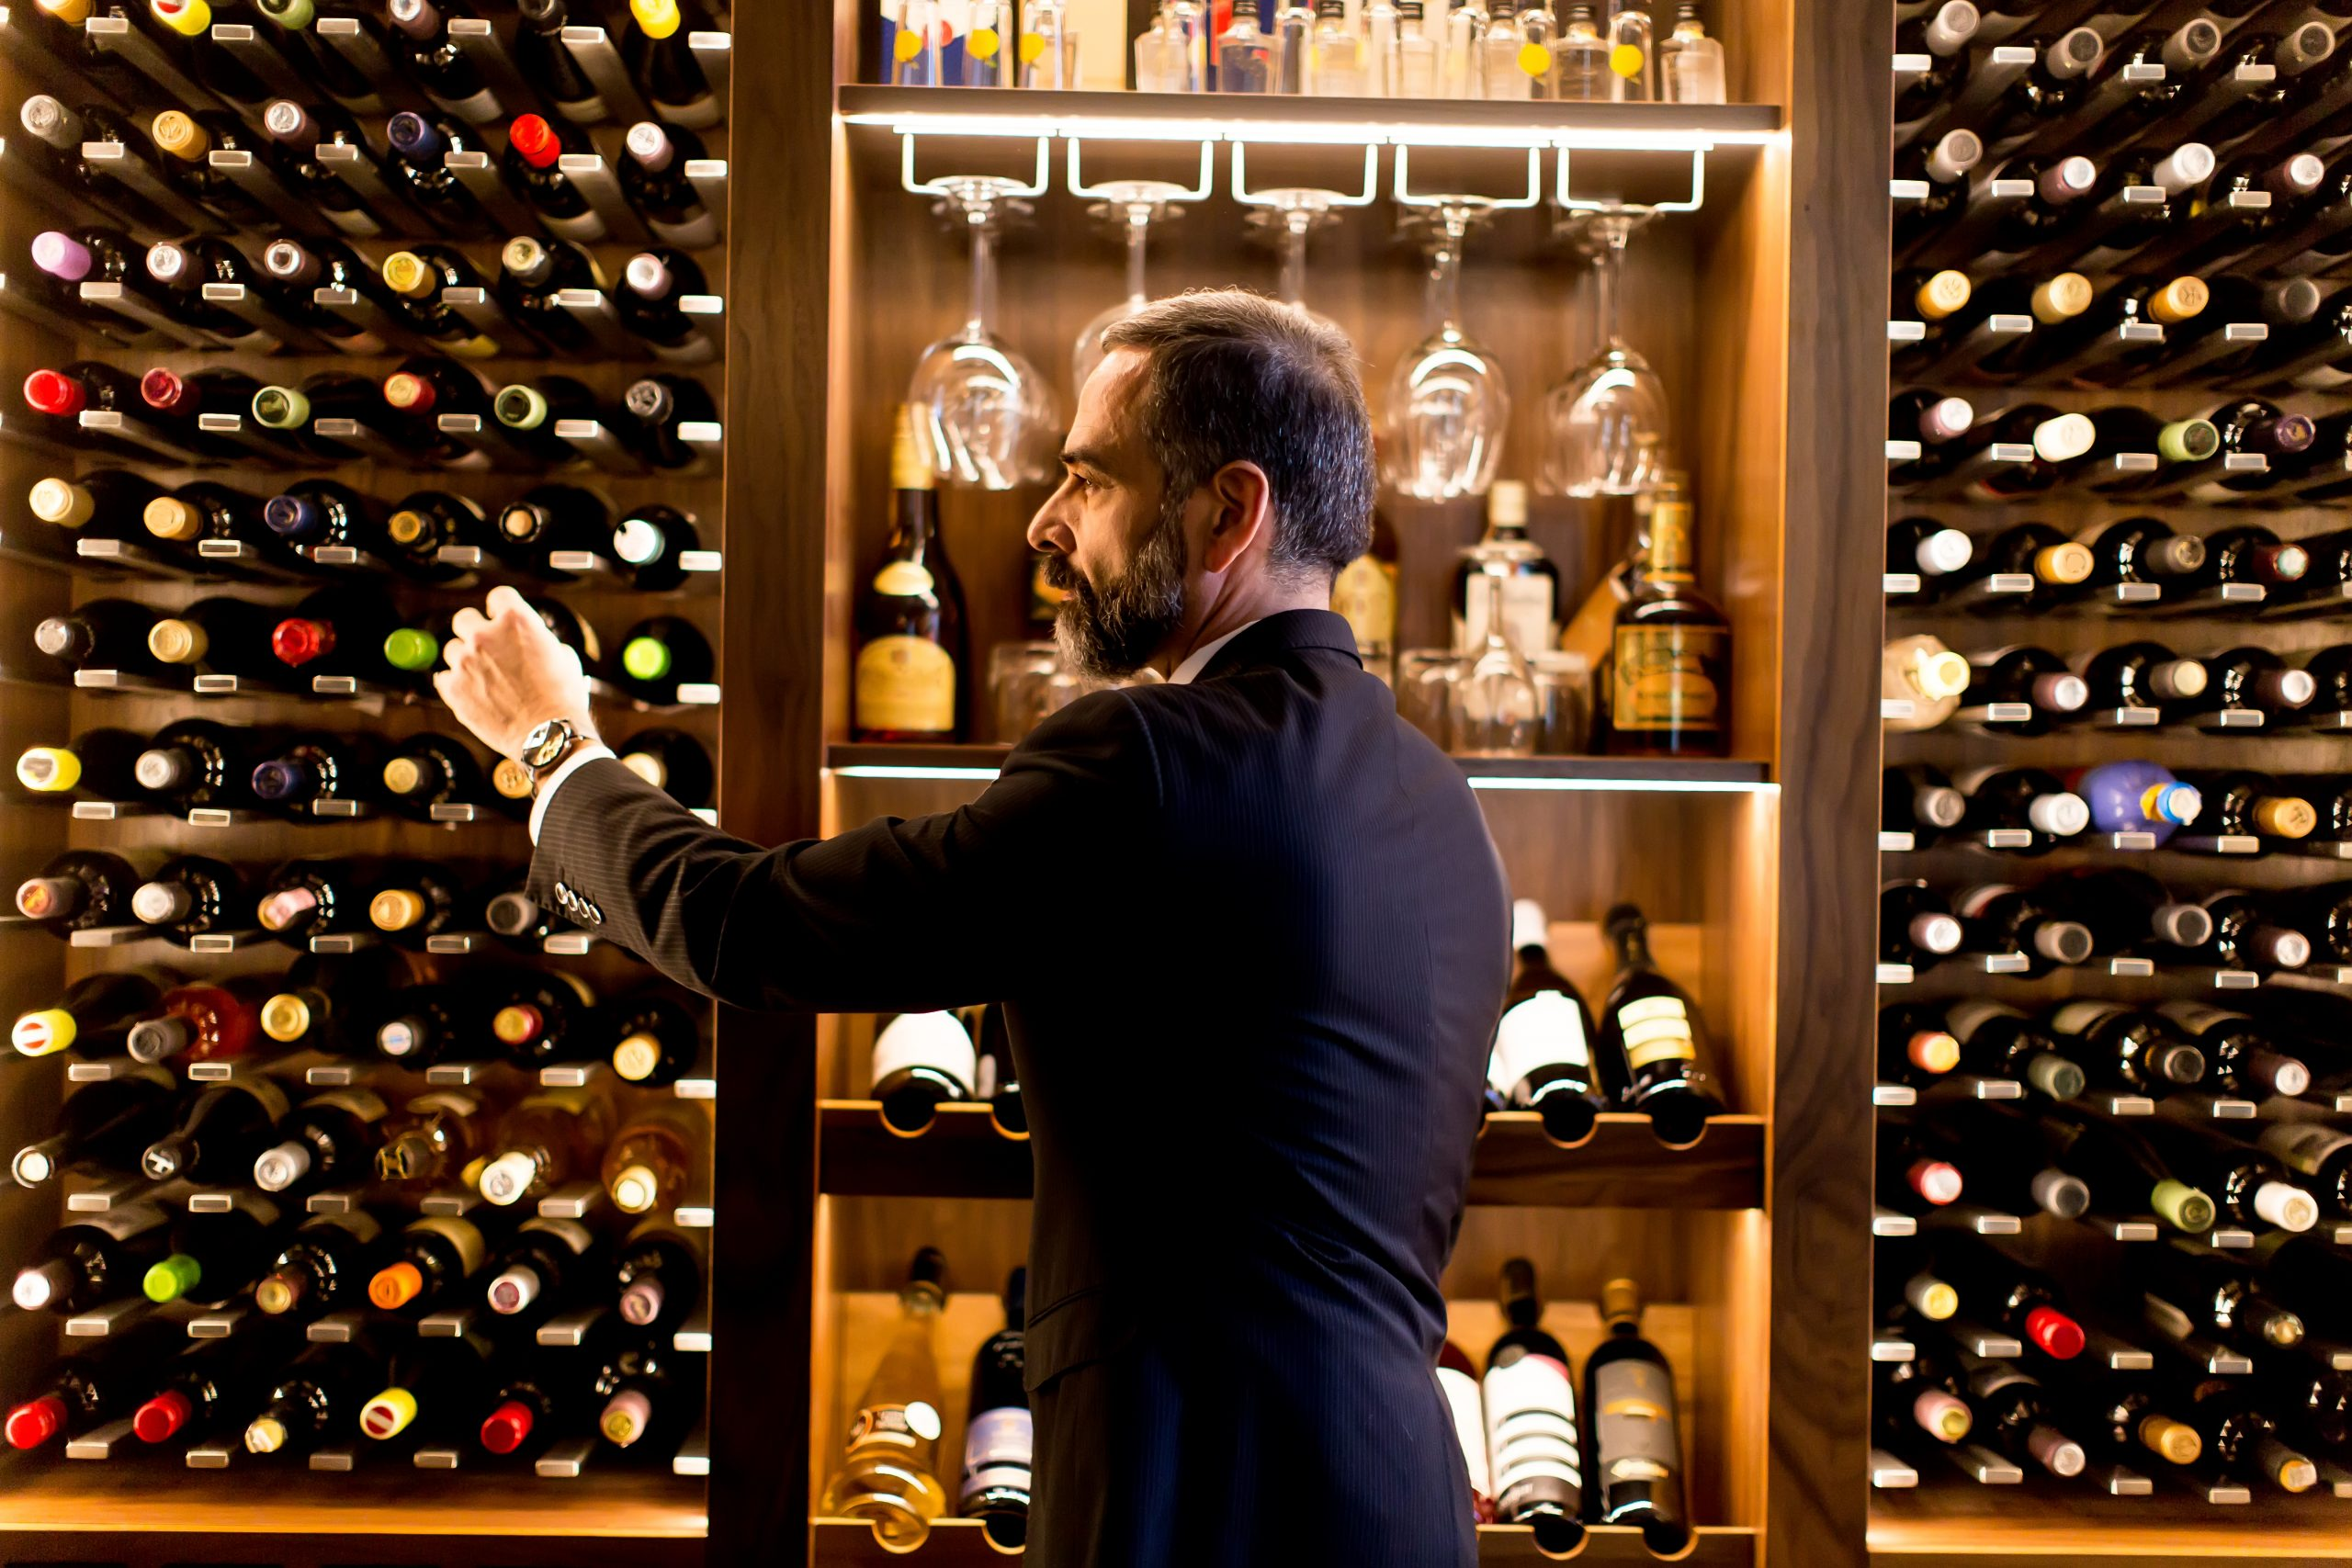 Sommelier chooses a bottle of wine